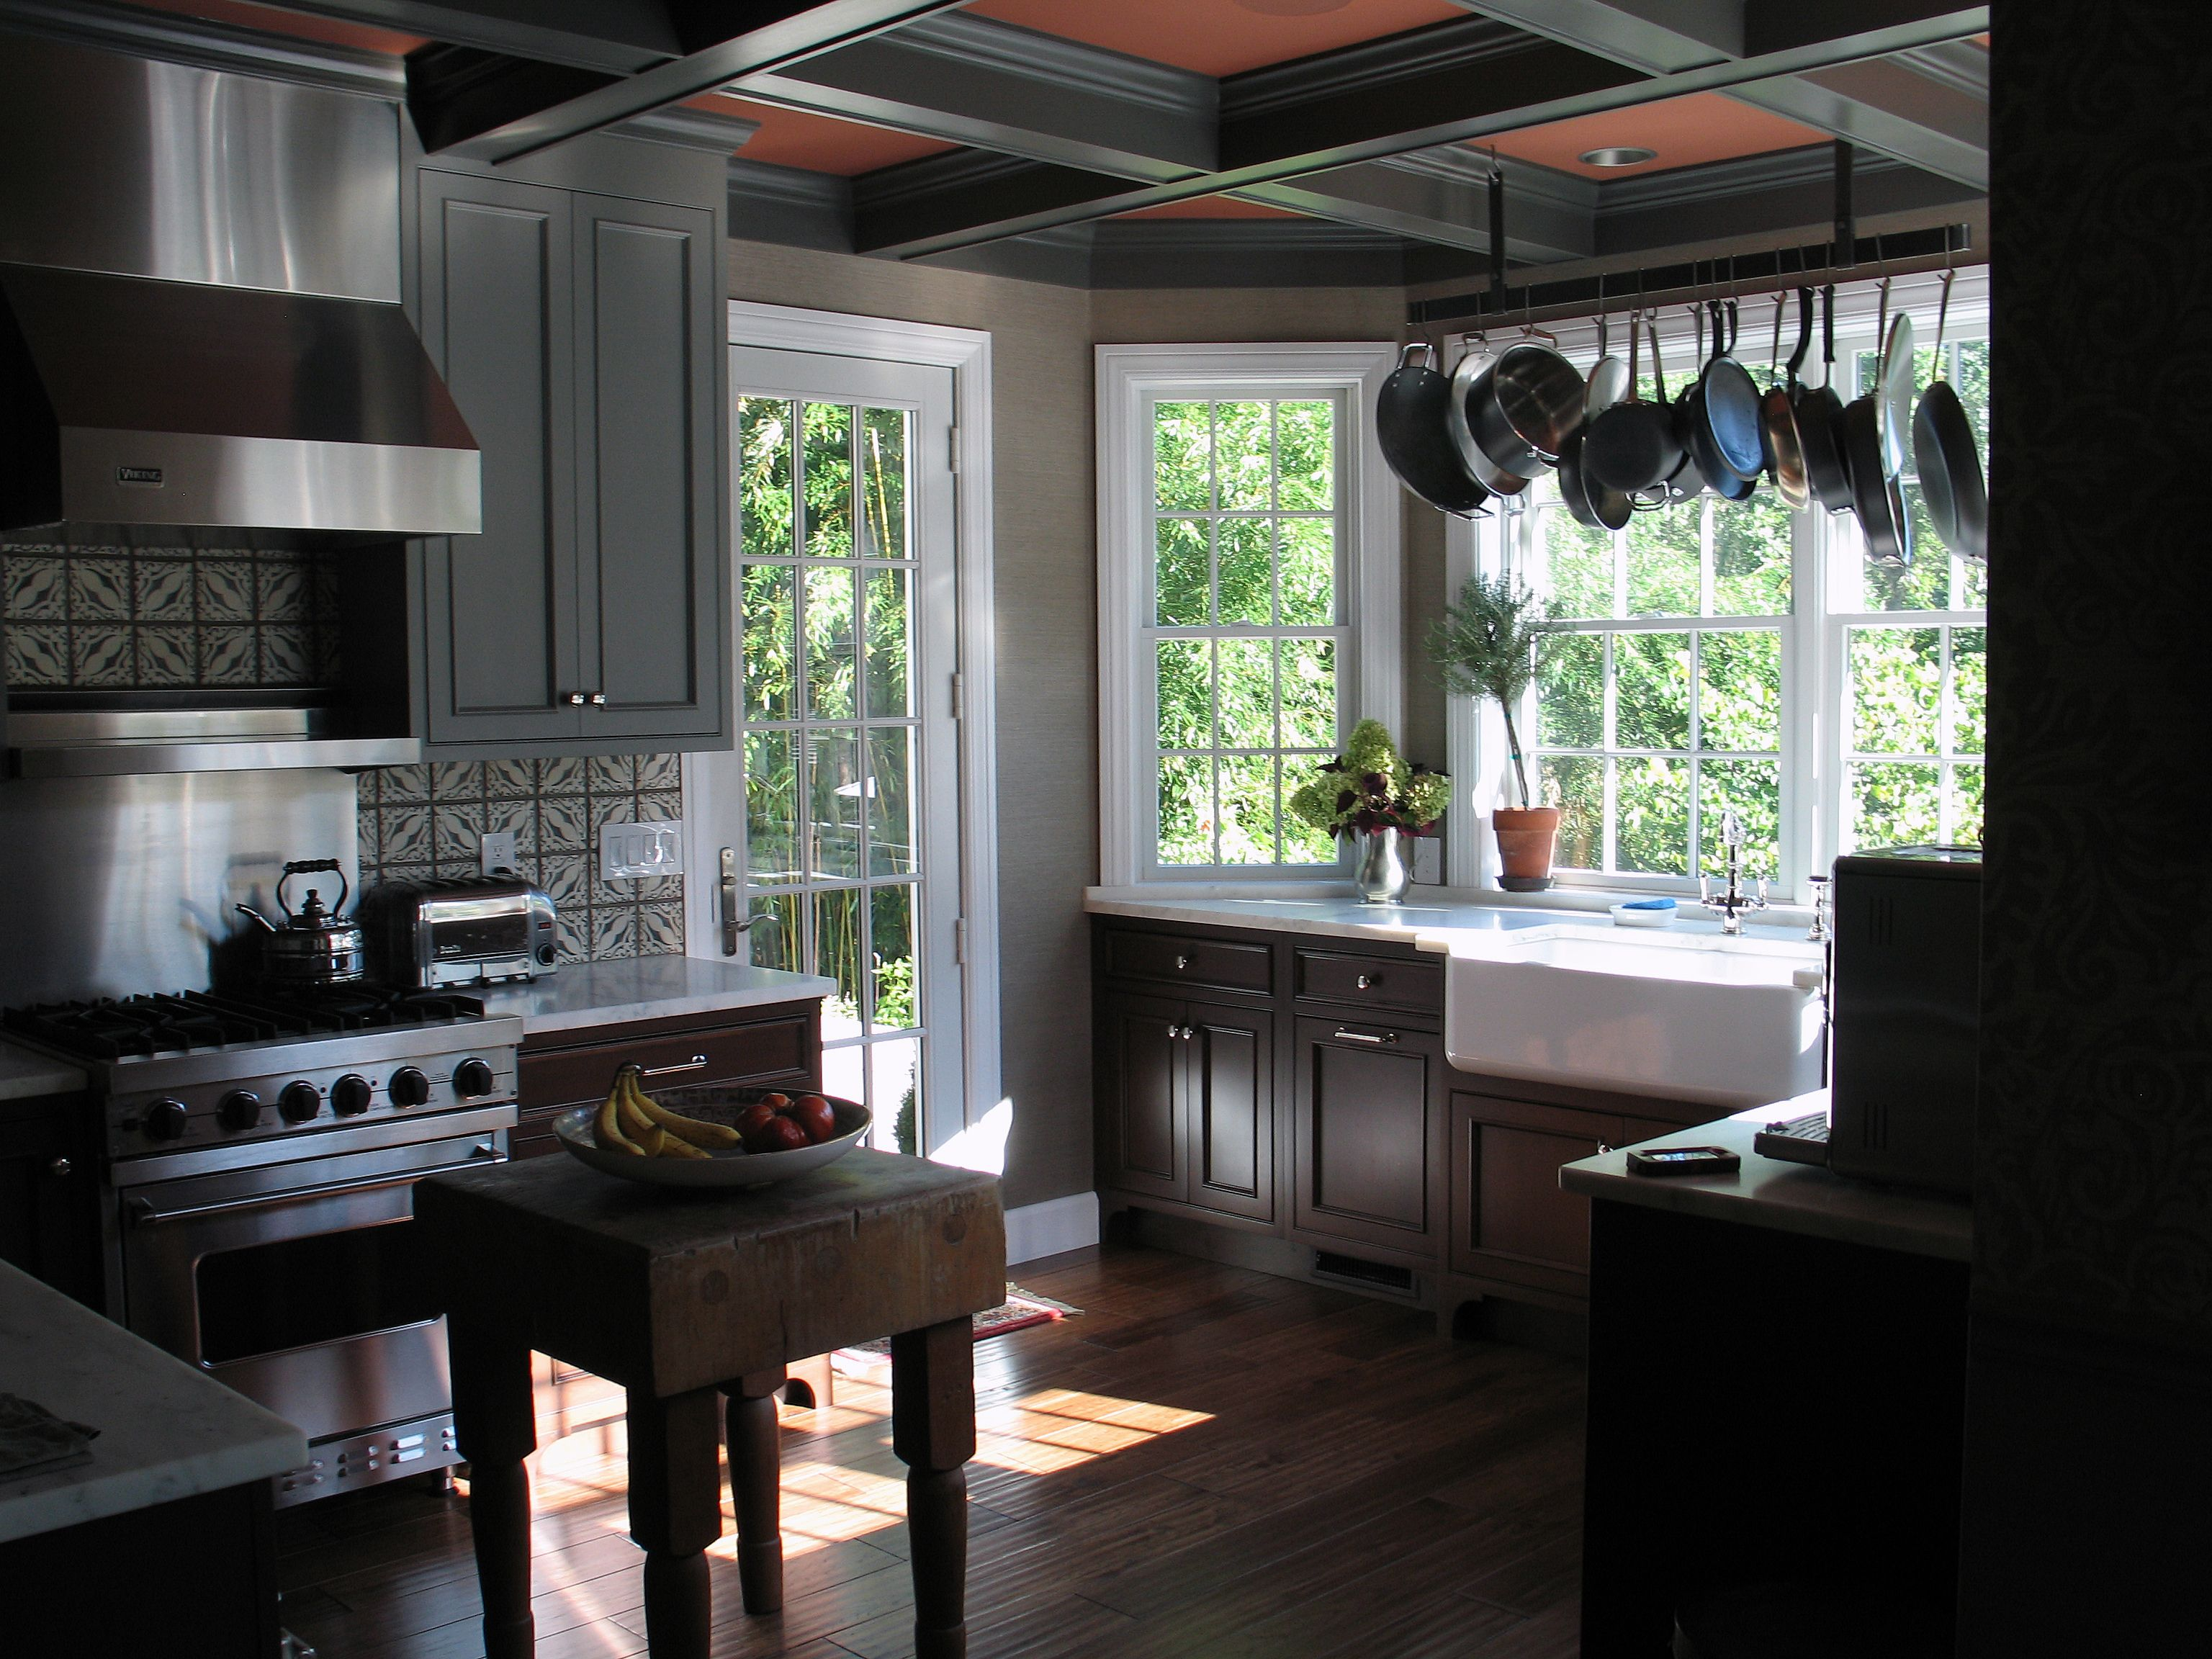 Based in Swansea, Ill., Padgett Building & Remodeling handled this recent kitchen project. (Photo: Justin Aymer)